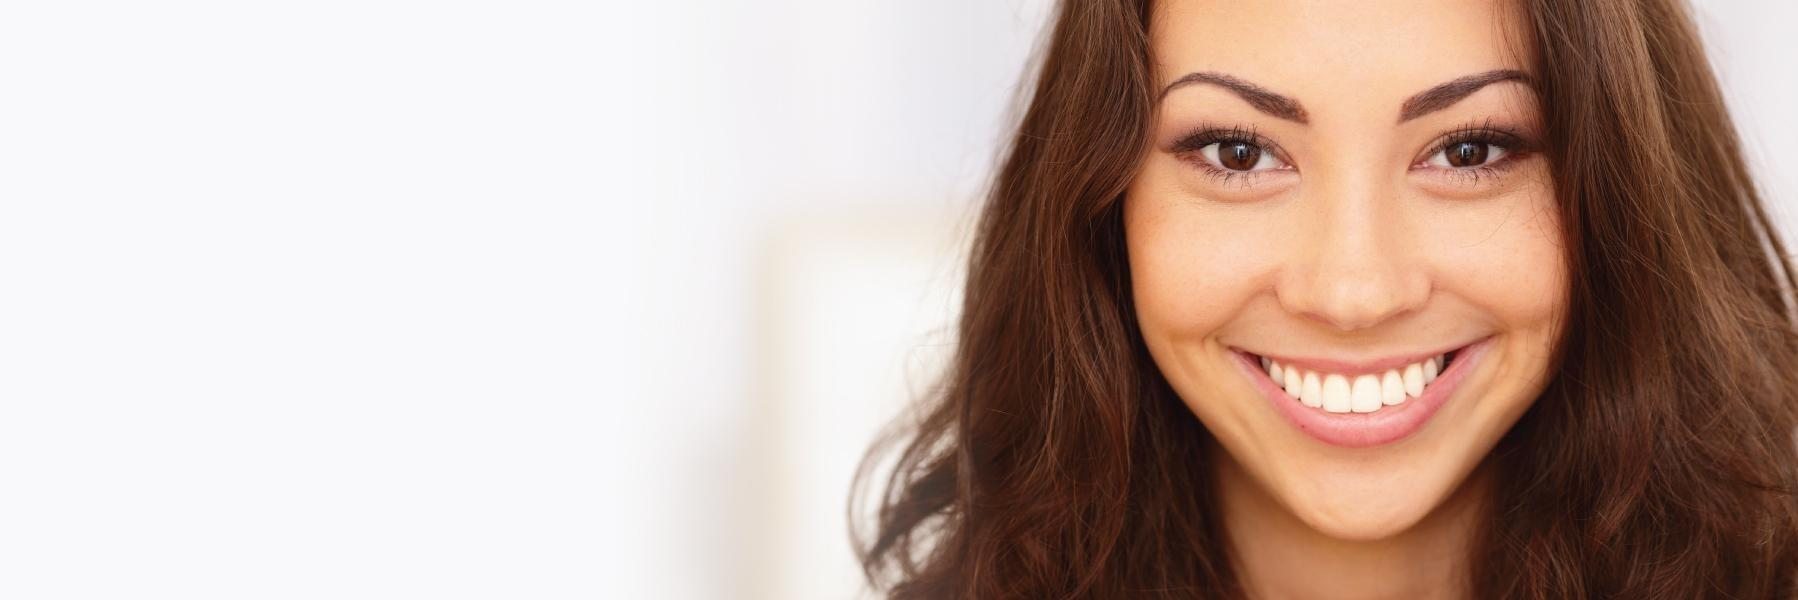 Teeth Whitening Patient | Nola Dentures and General Dentistry